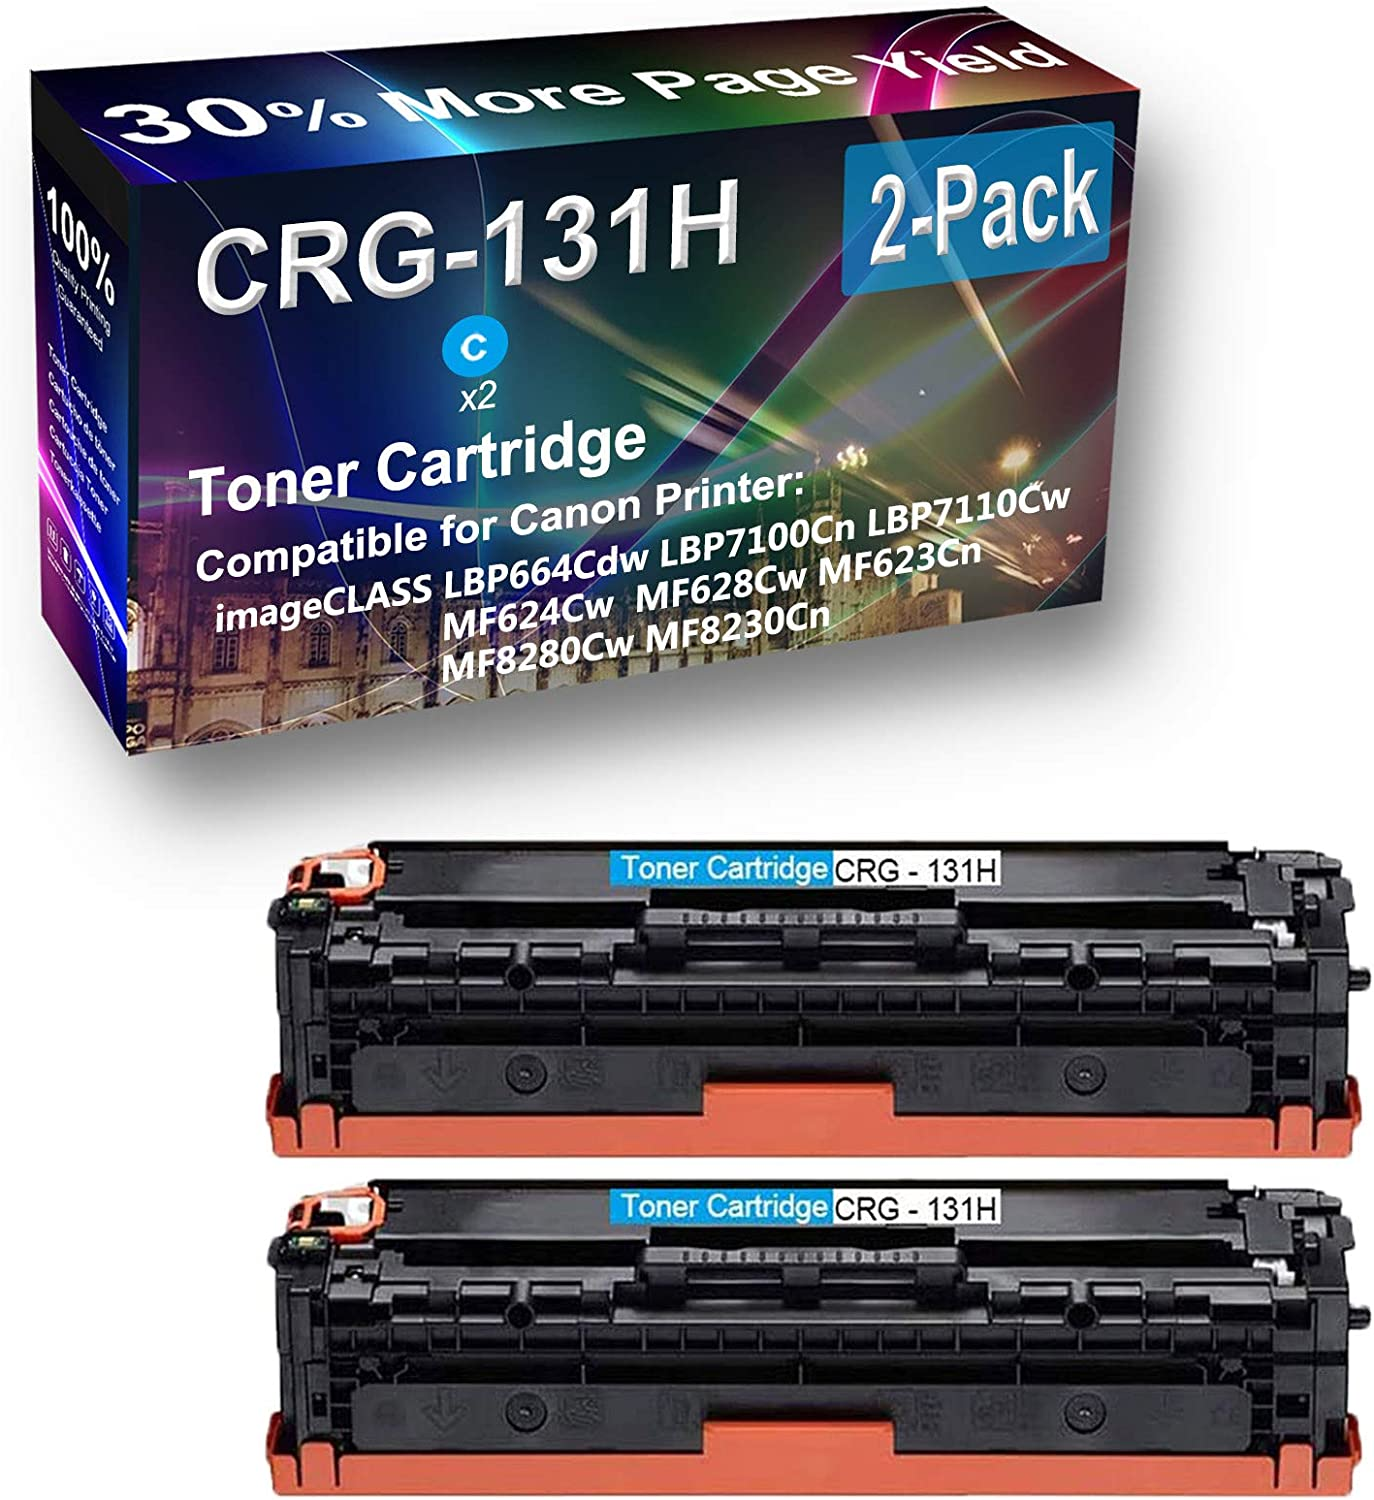 2-Pack (Cyan) Compatible High Capacity CRG-131H Toner Cartridge Used for Canon Color imageCLASS LBP7100Cn LBP7110Cw Printer